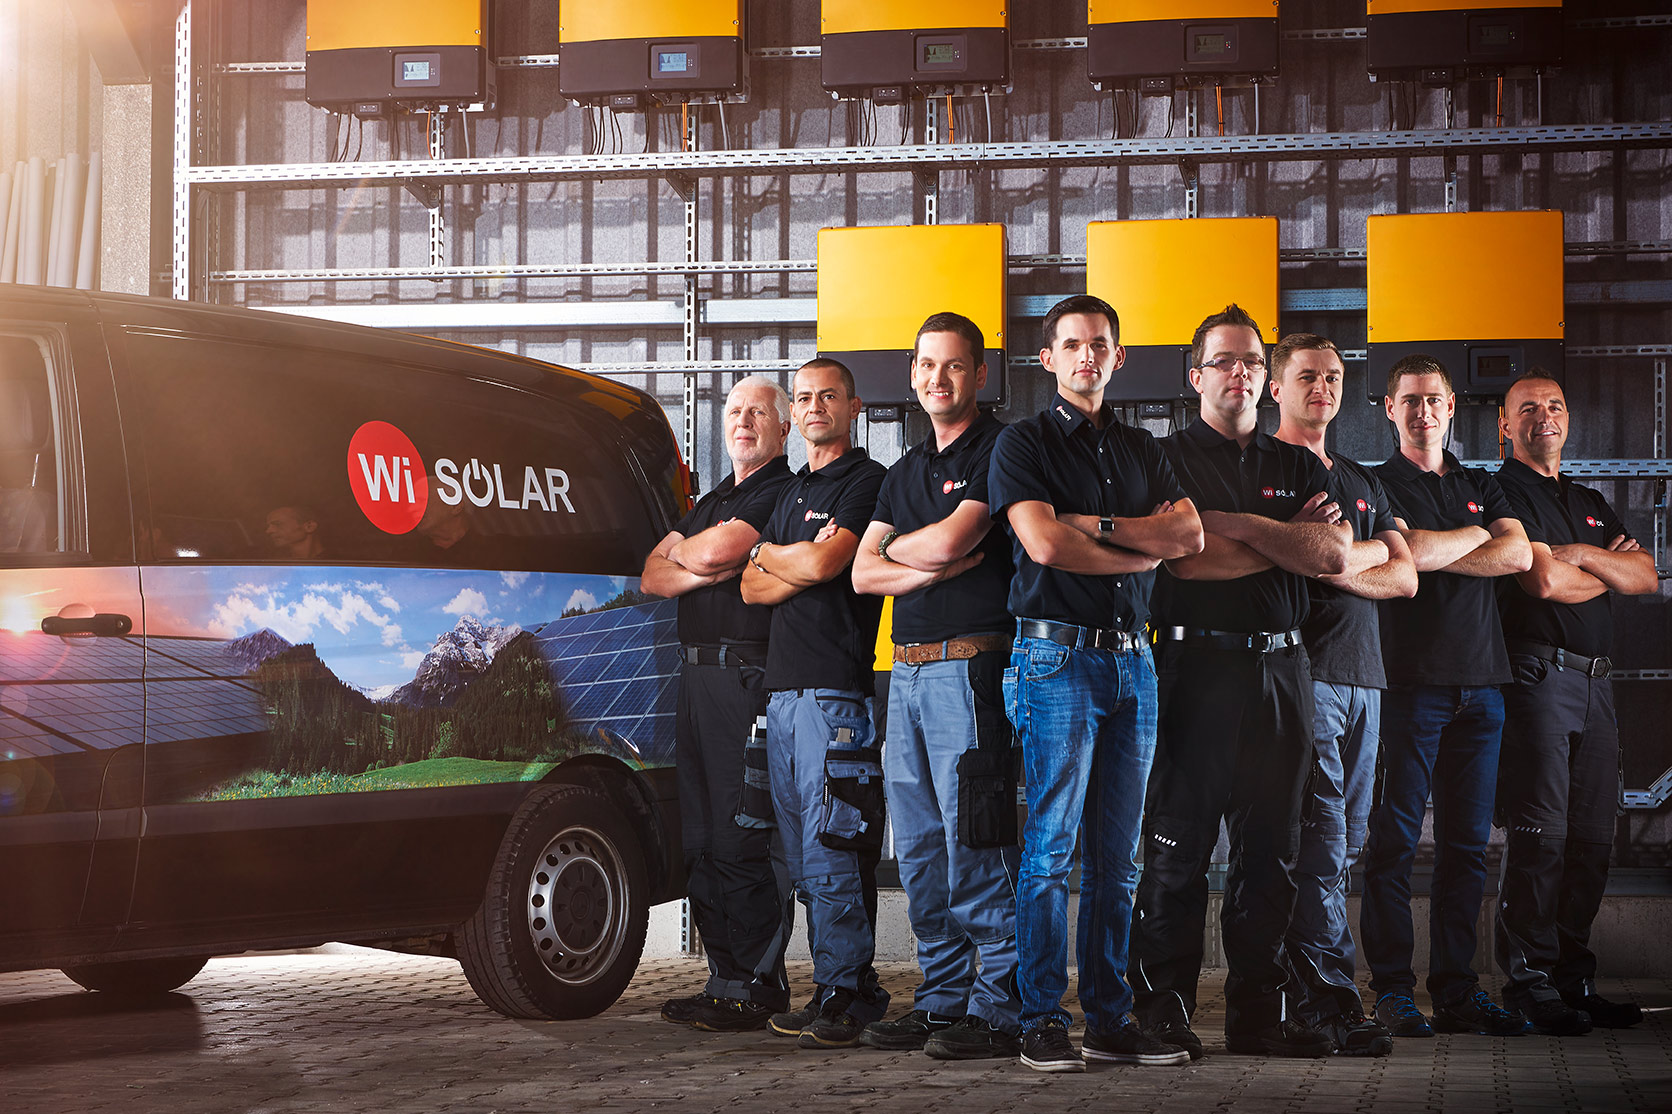 ueber-uns-galerie-wisolar-team-men-at-work